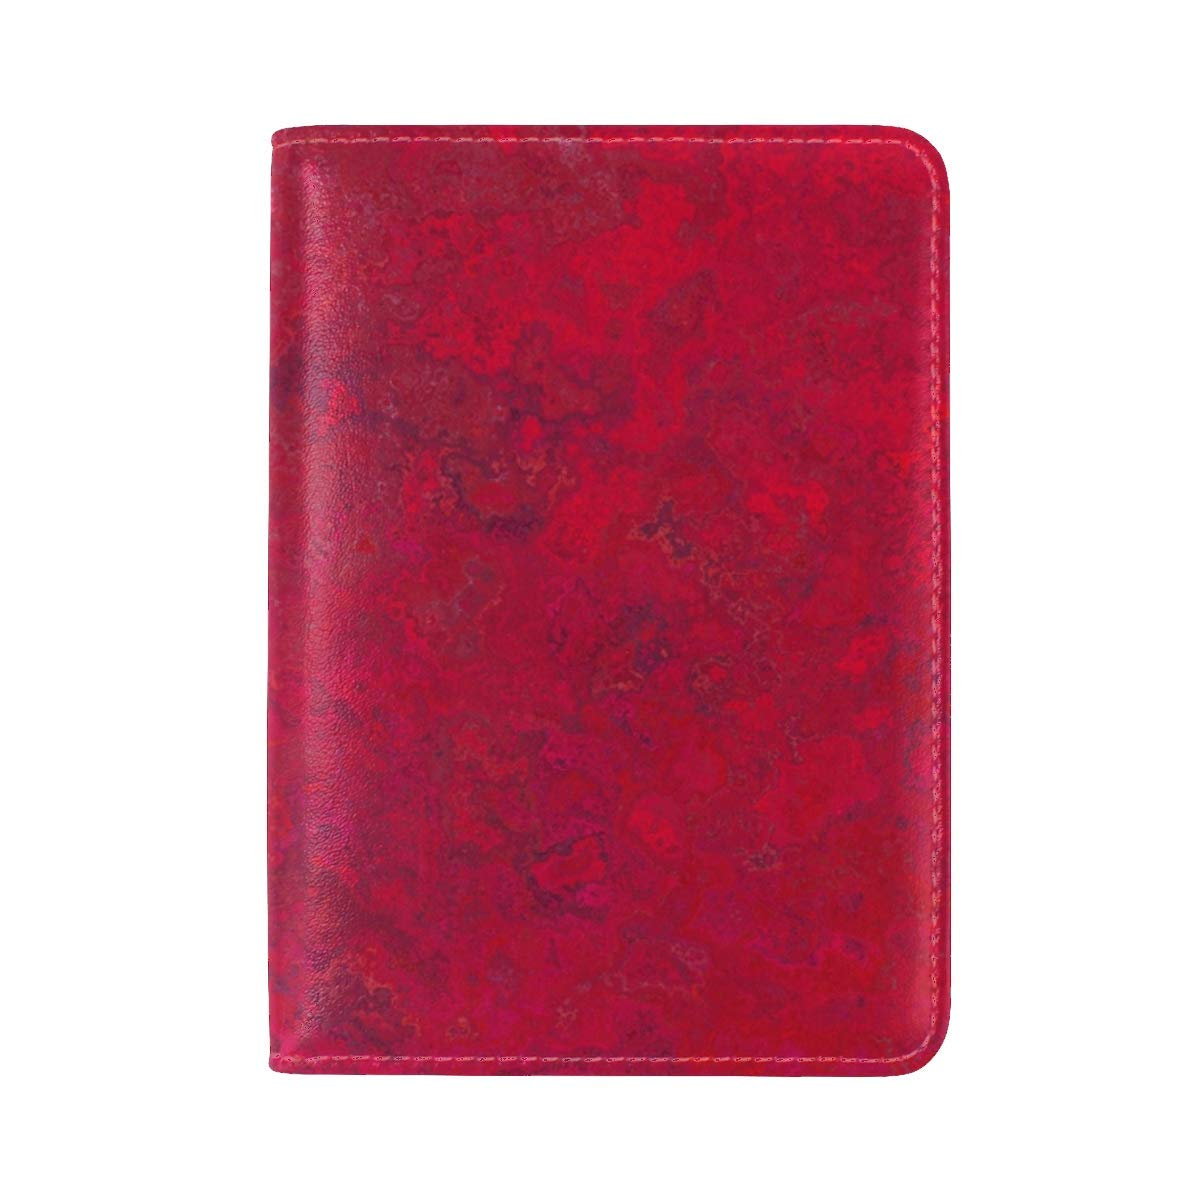 Texture Pink Spots Leather Passport Holder Cover Case Travel One Pocket